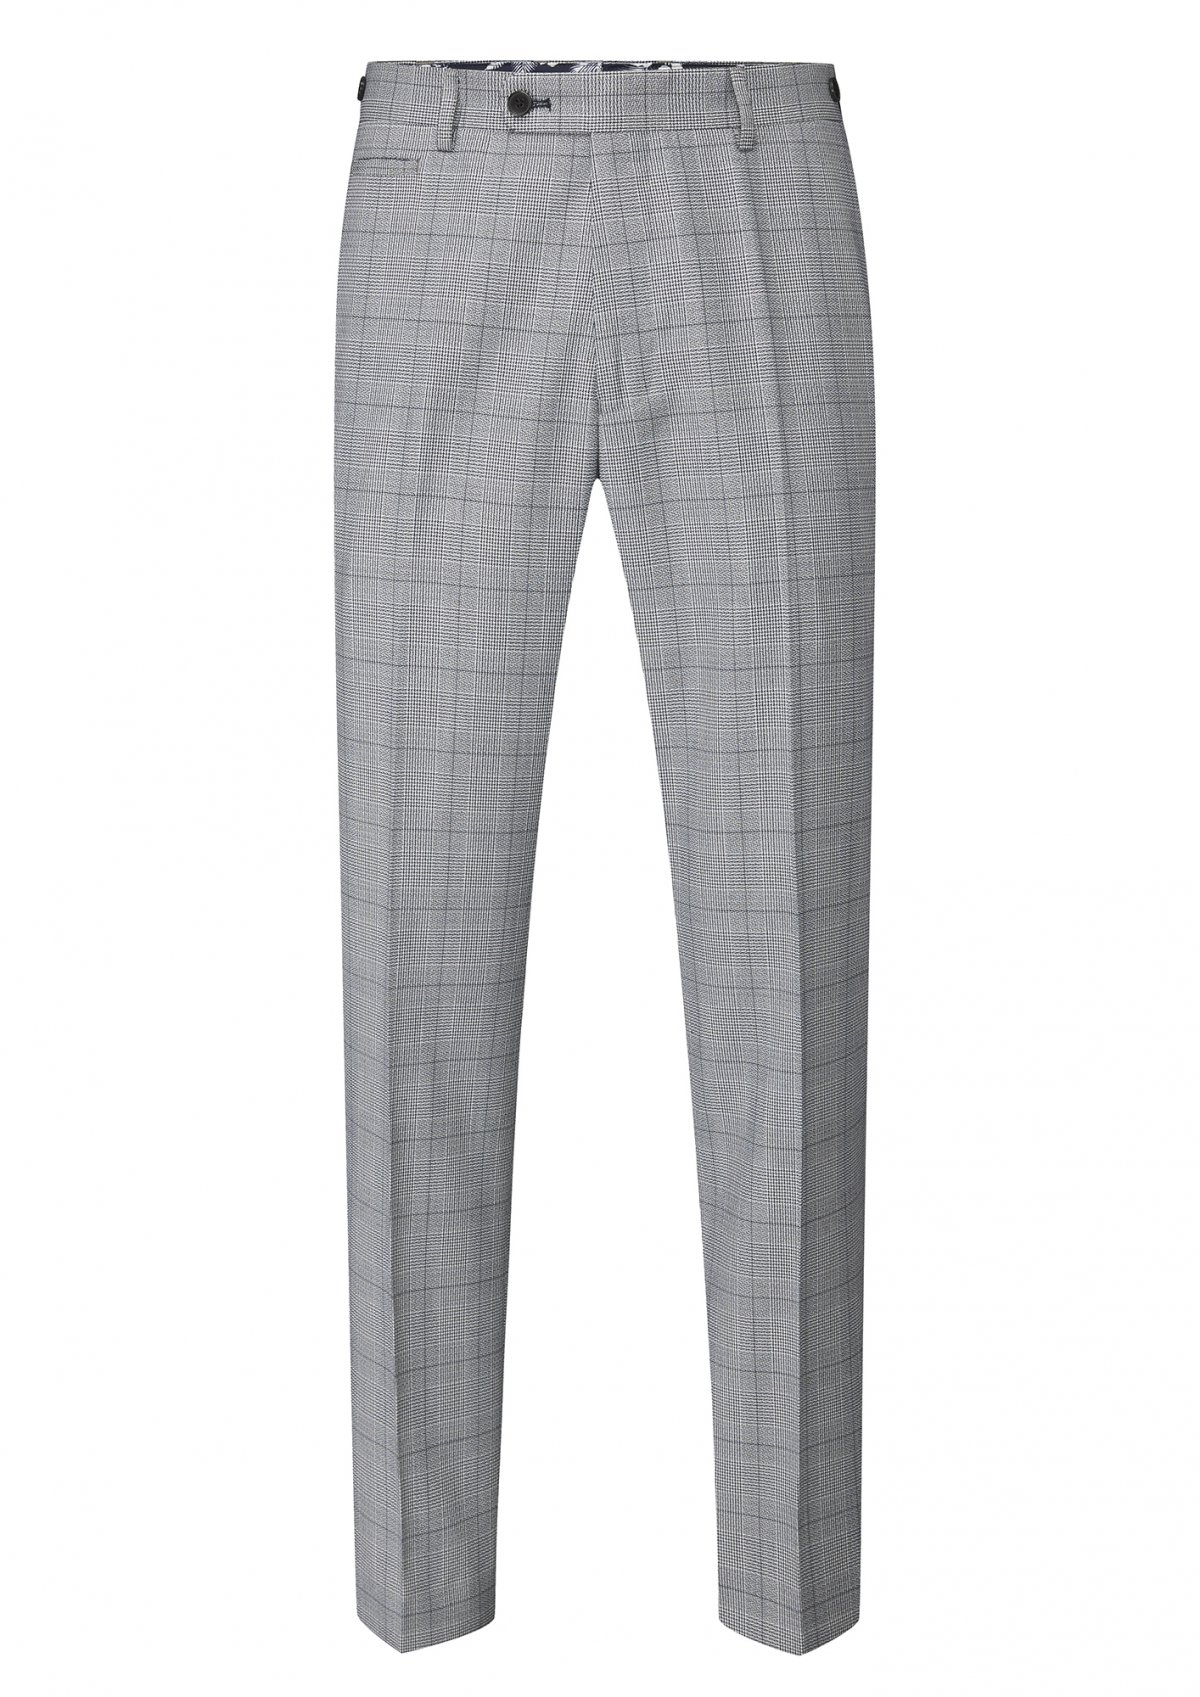 Anello Tapered fit Stretch trouser